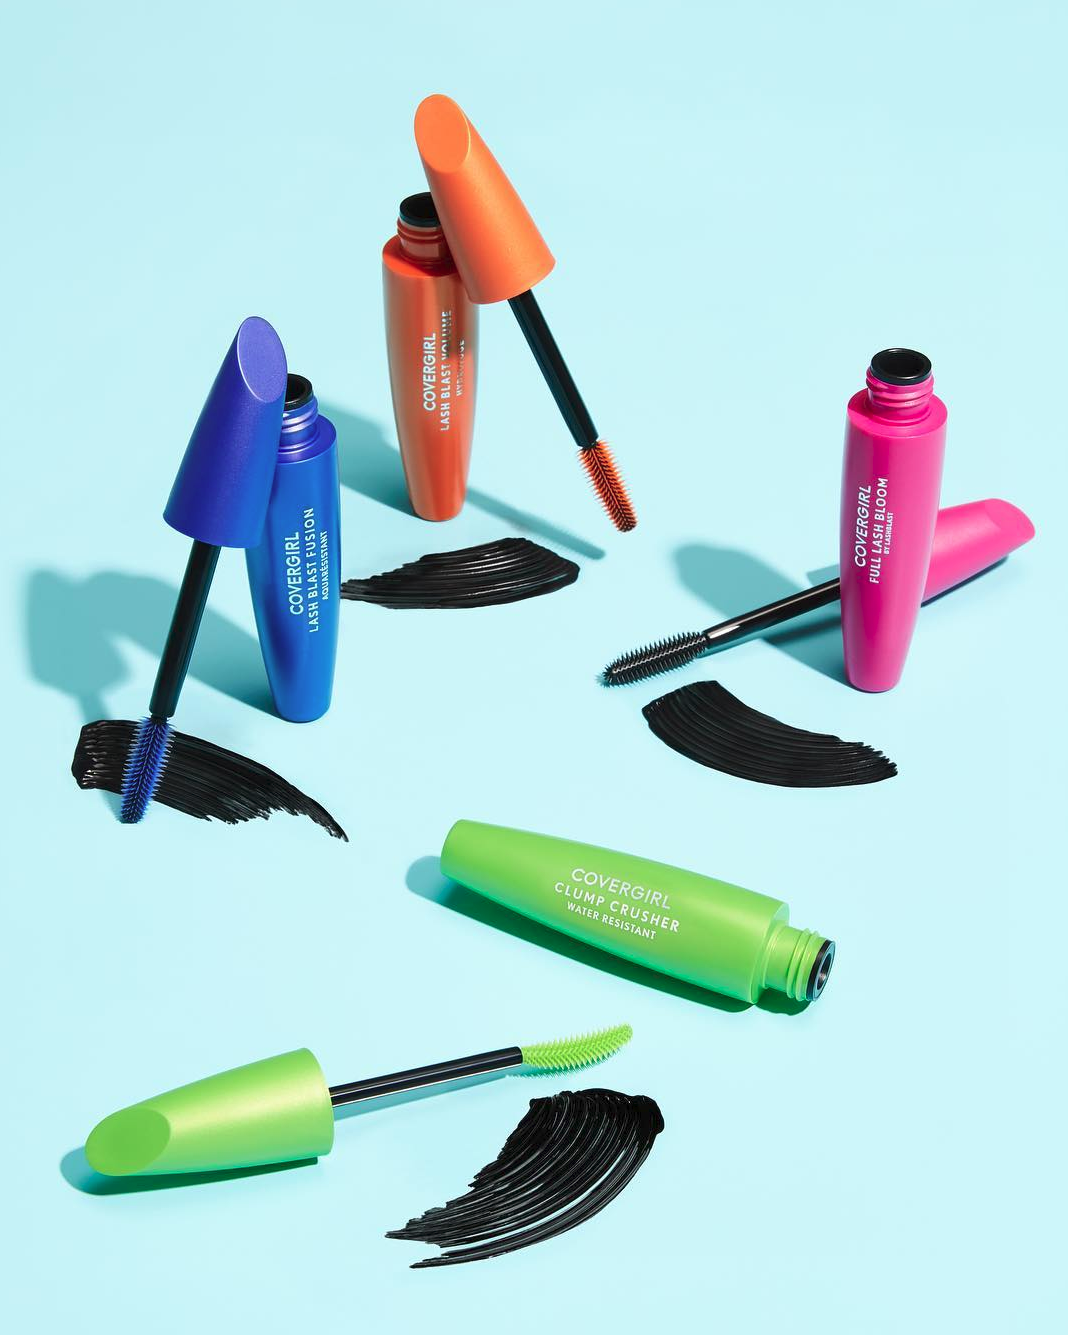 COVERGIRLmascaras.png